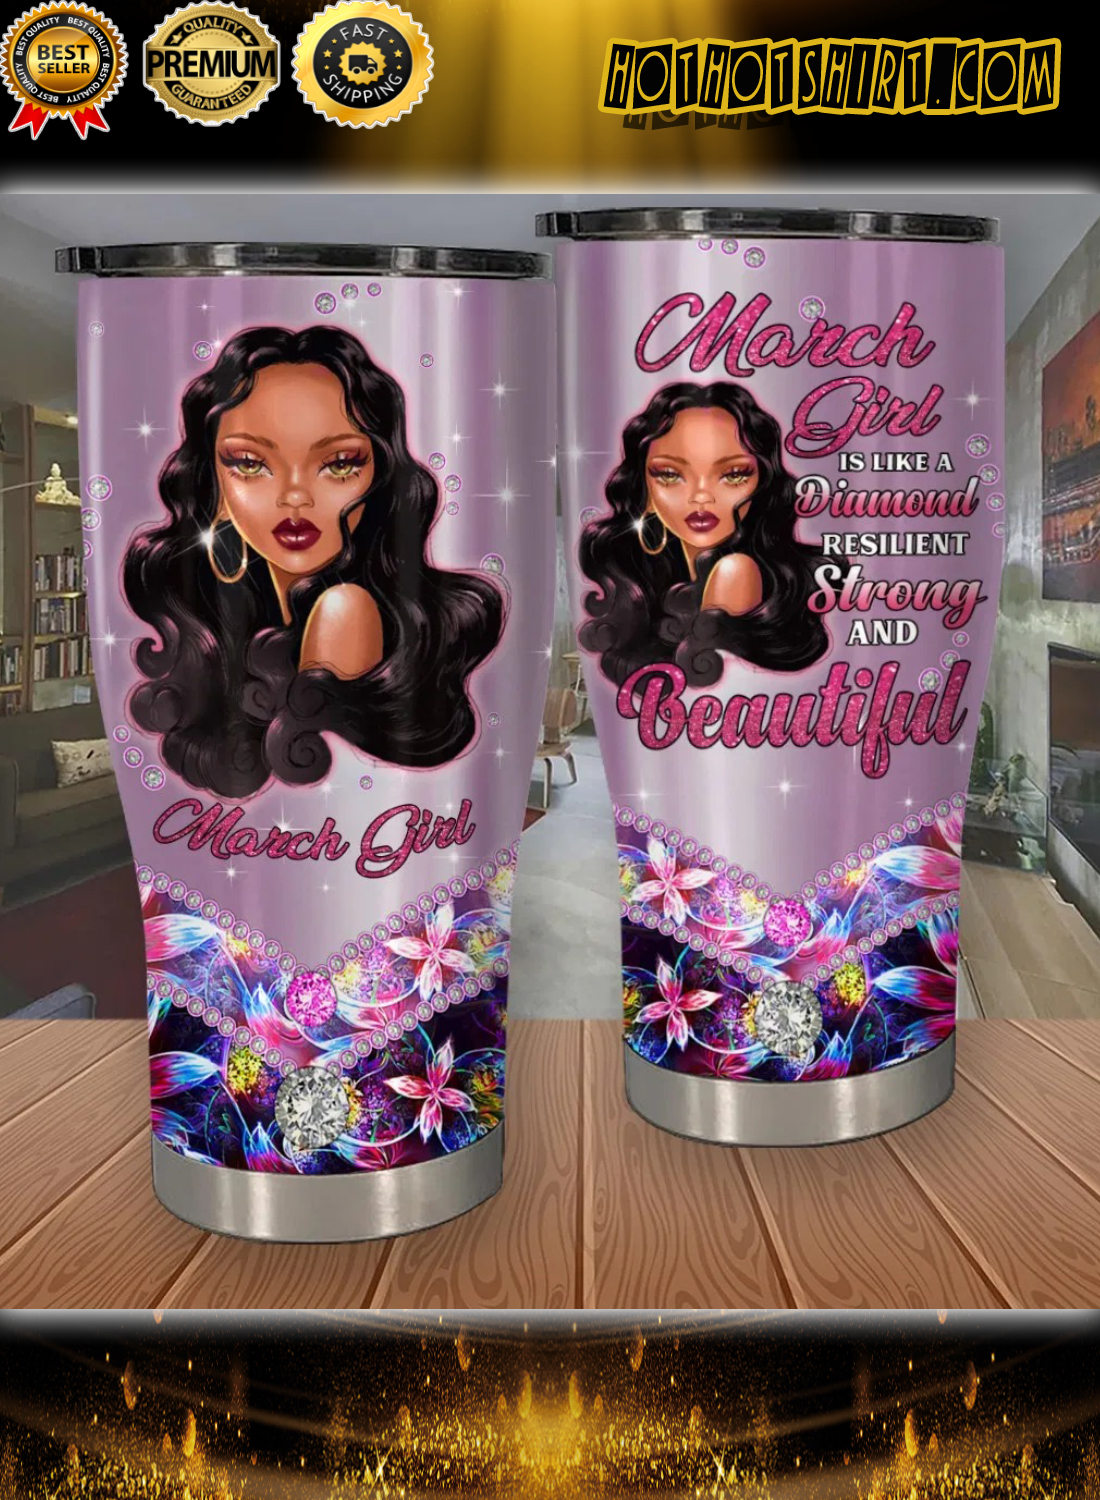 March girl is like a diamond resilient strong and beautiful tumbler 2